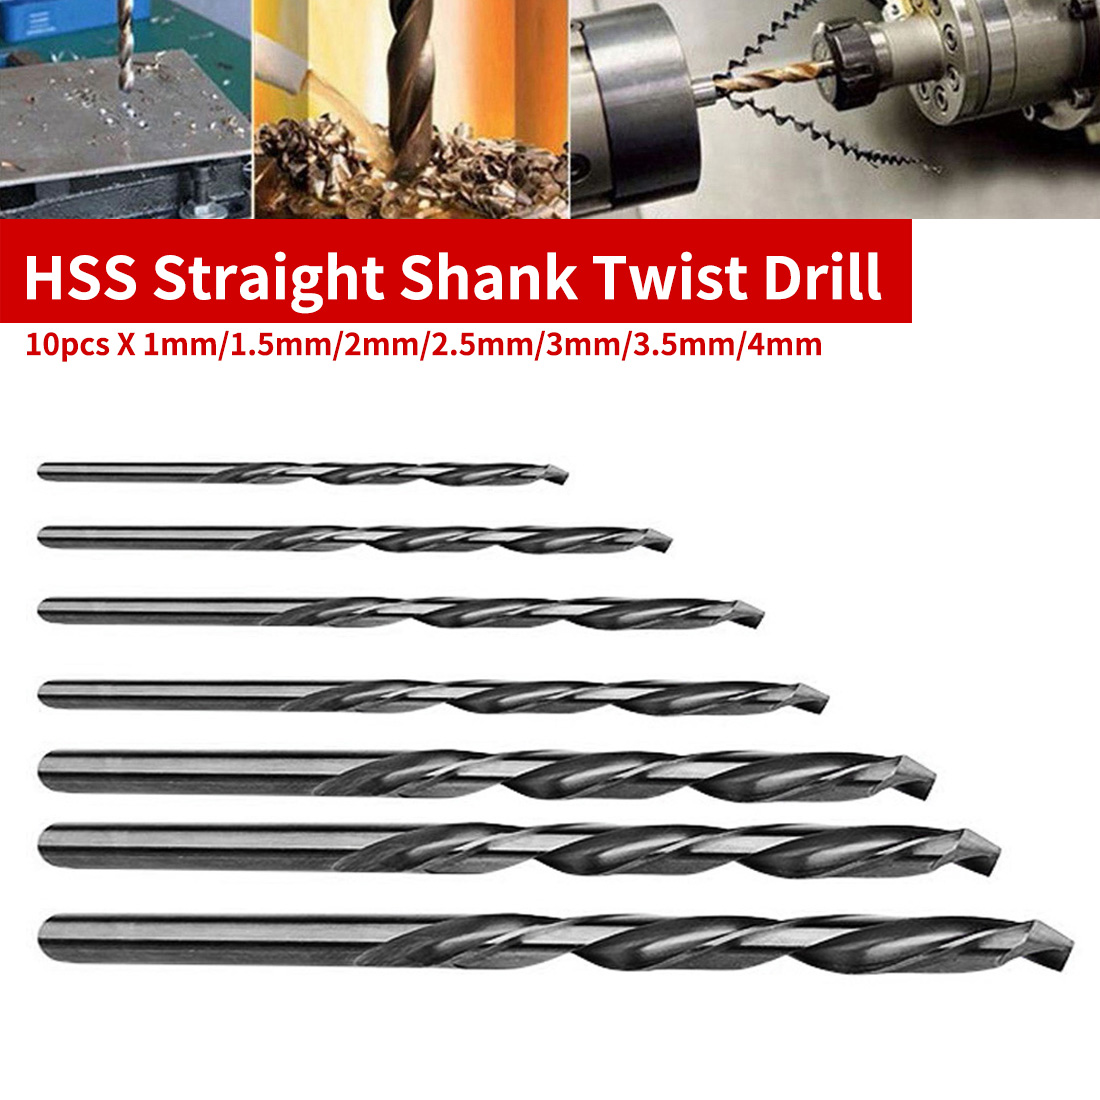 1mm/1.5mm/2mm/2.5mm/3mm/3.5mm/4mm 10pcs HSS Mini Drill Twist Drill Bits Set Straight Shank For PCB/Thin Aluminum/Iron Sheet